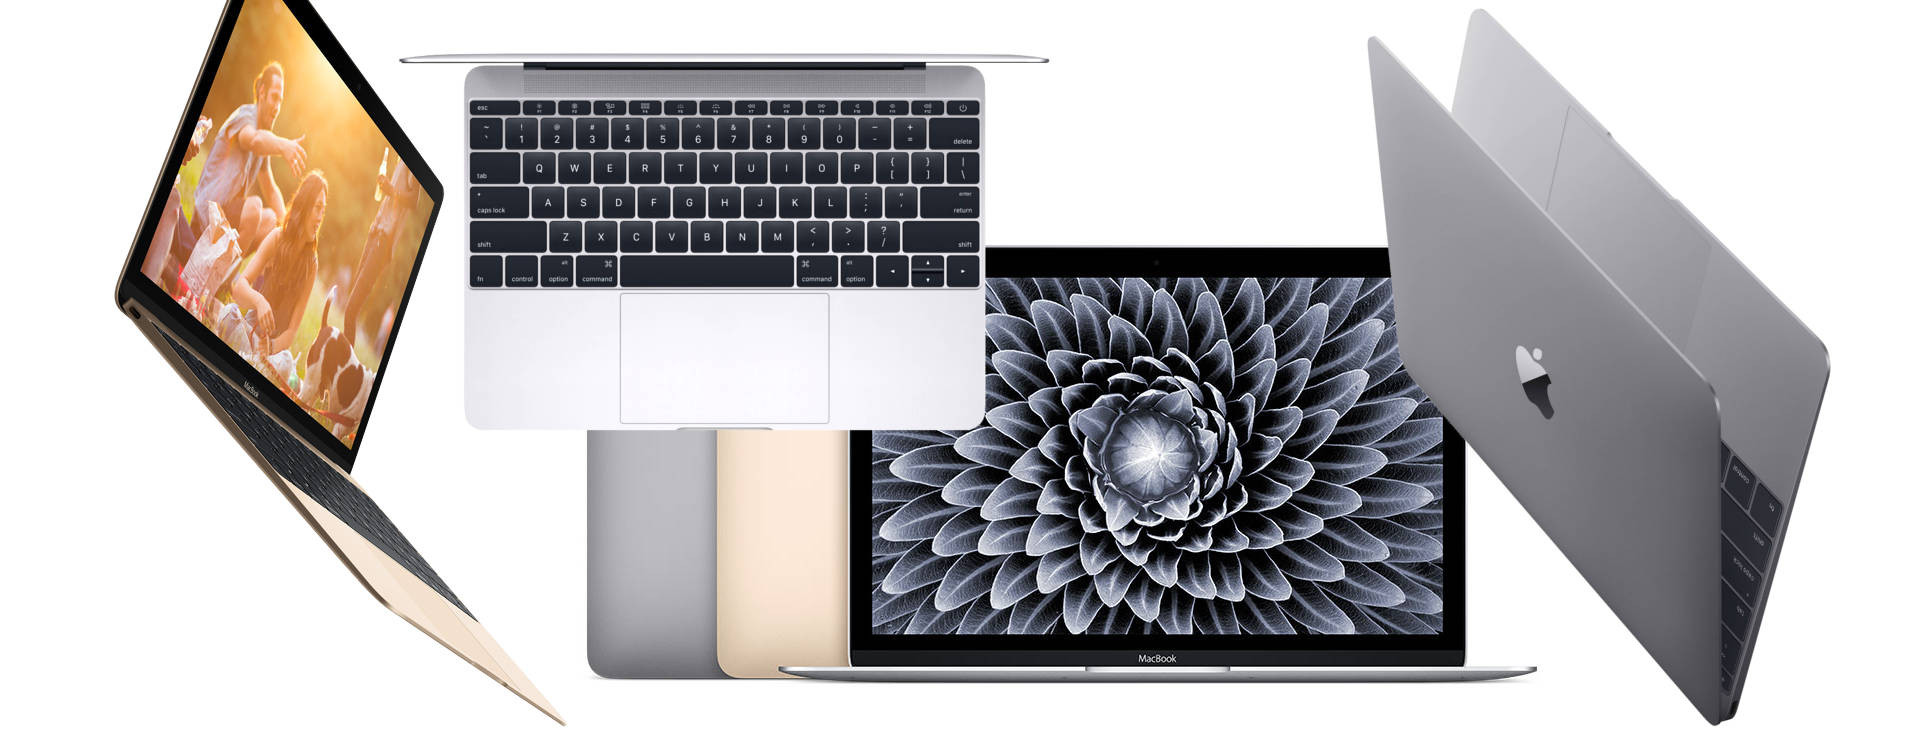 Introducing the Next Generation Early 2015 Macbook